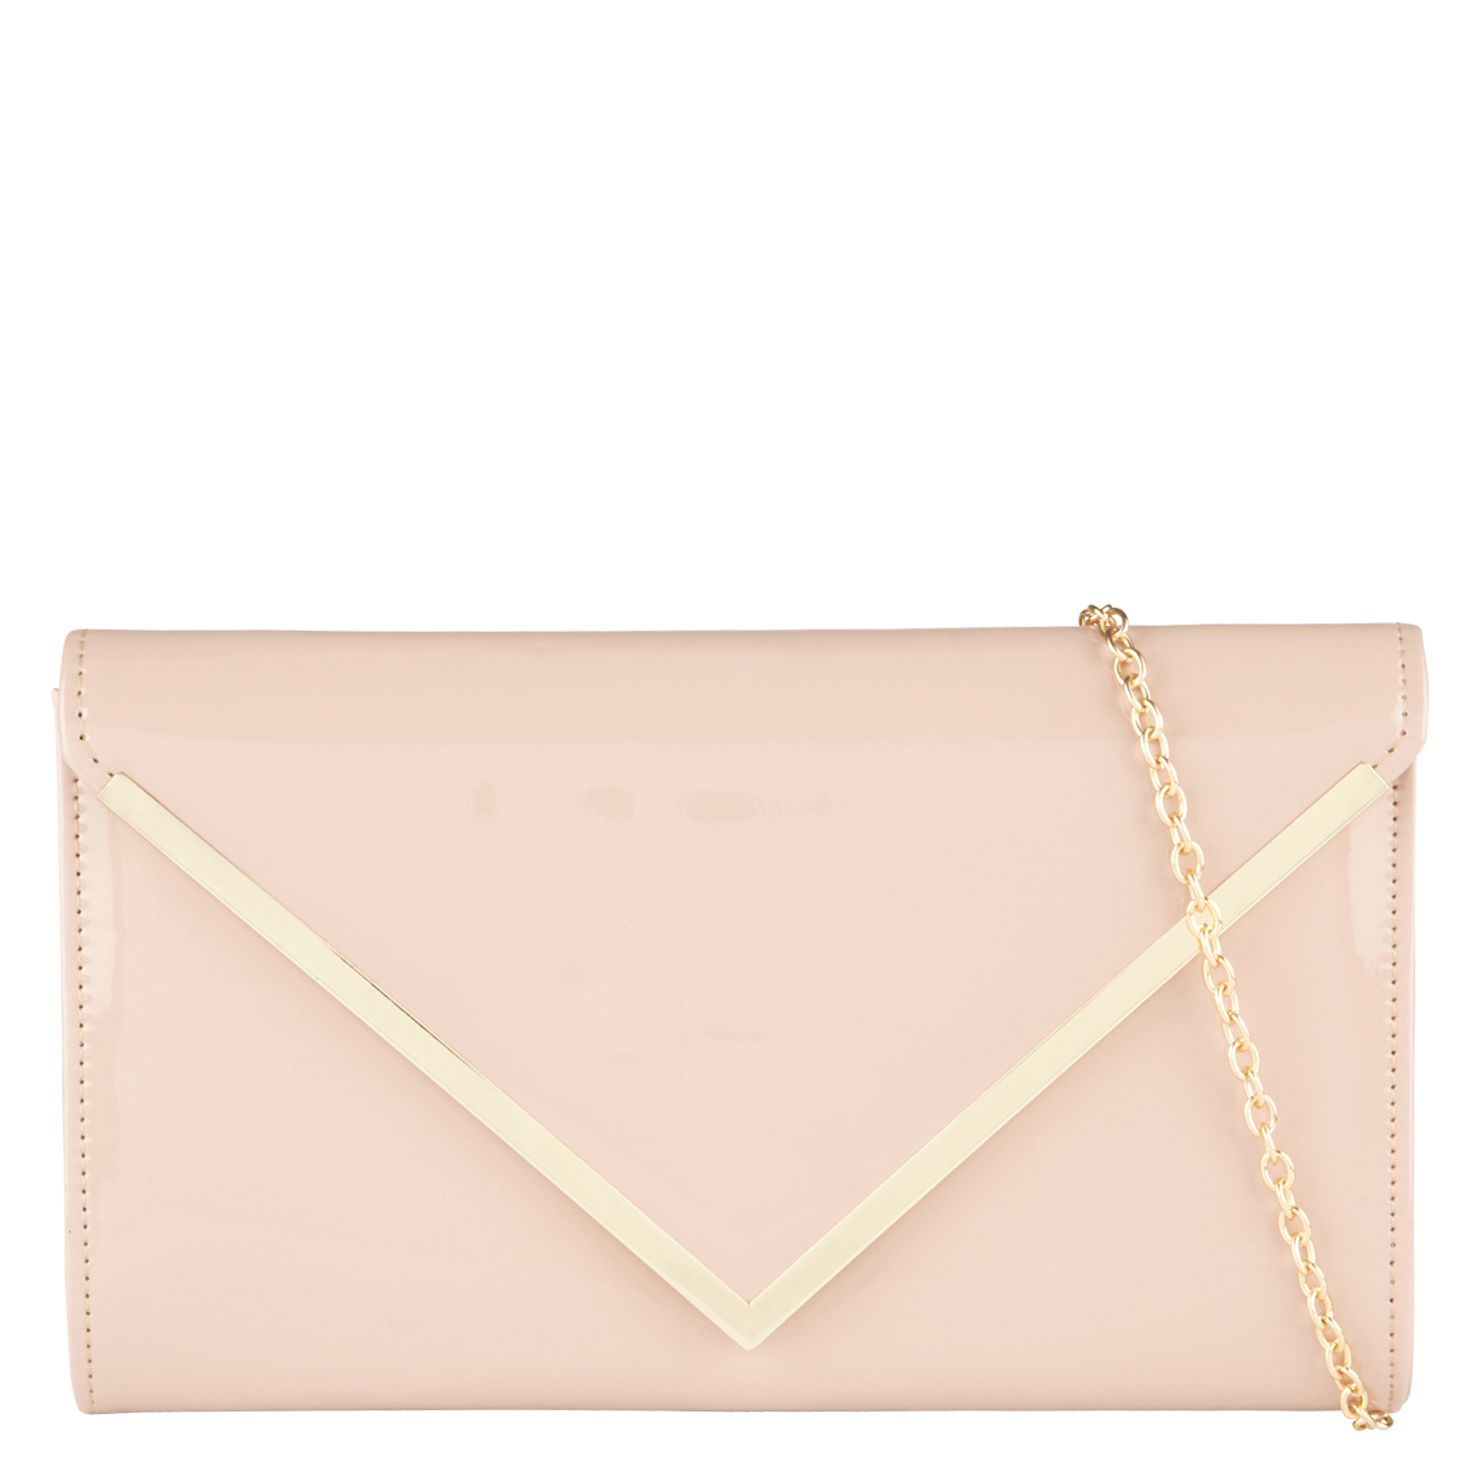 Hendon envelope clutch bag